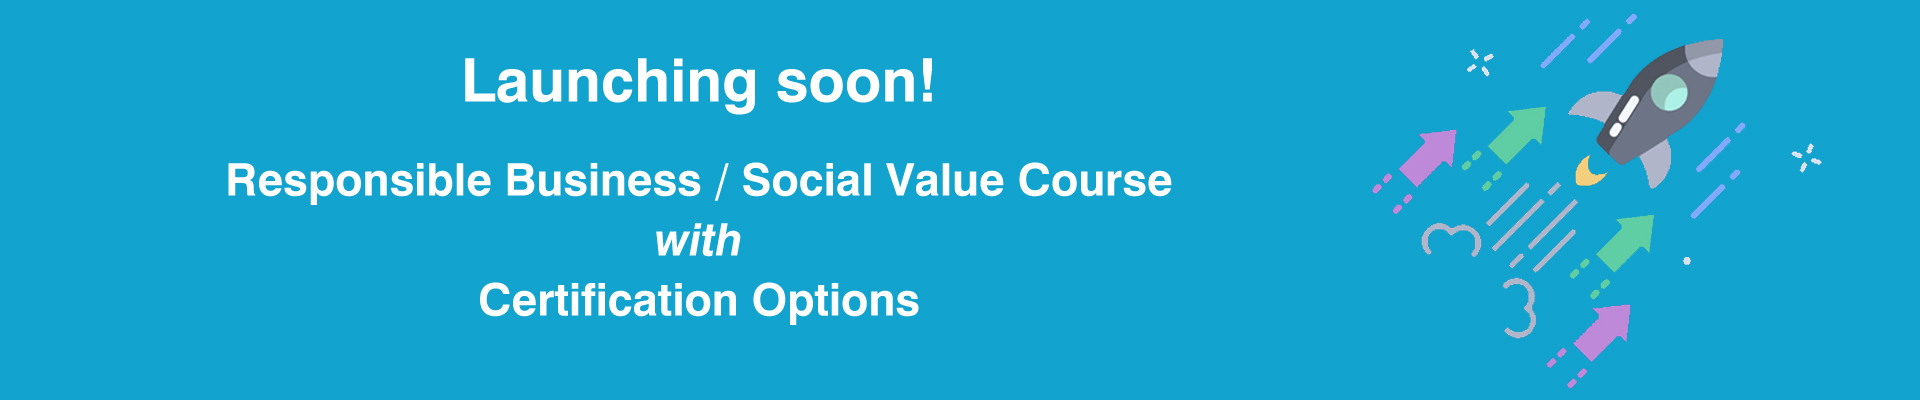 responsible business social value course with certification options